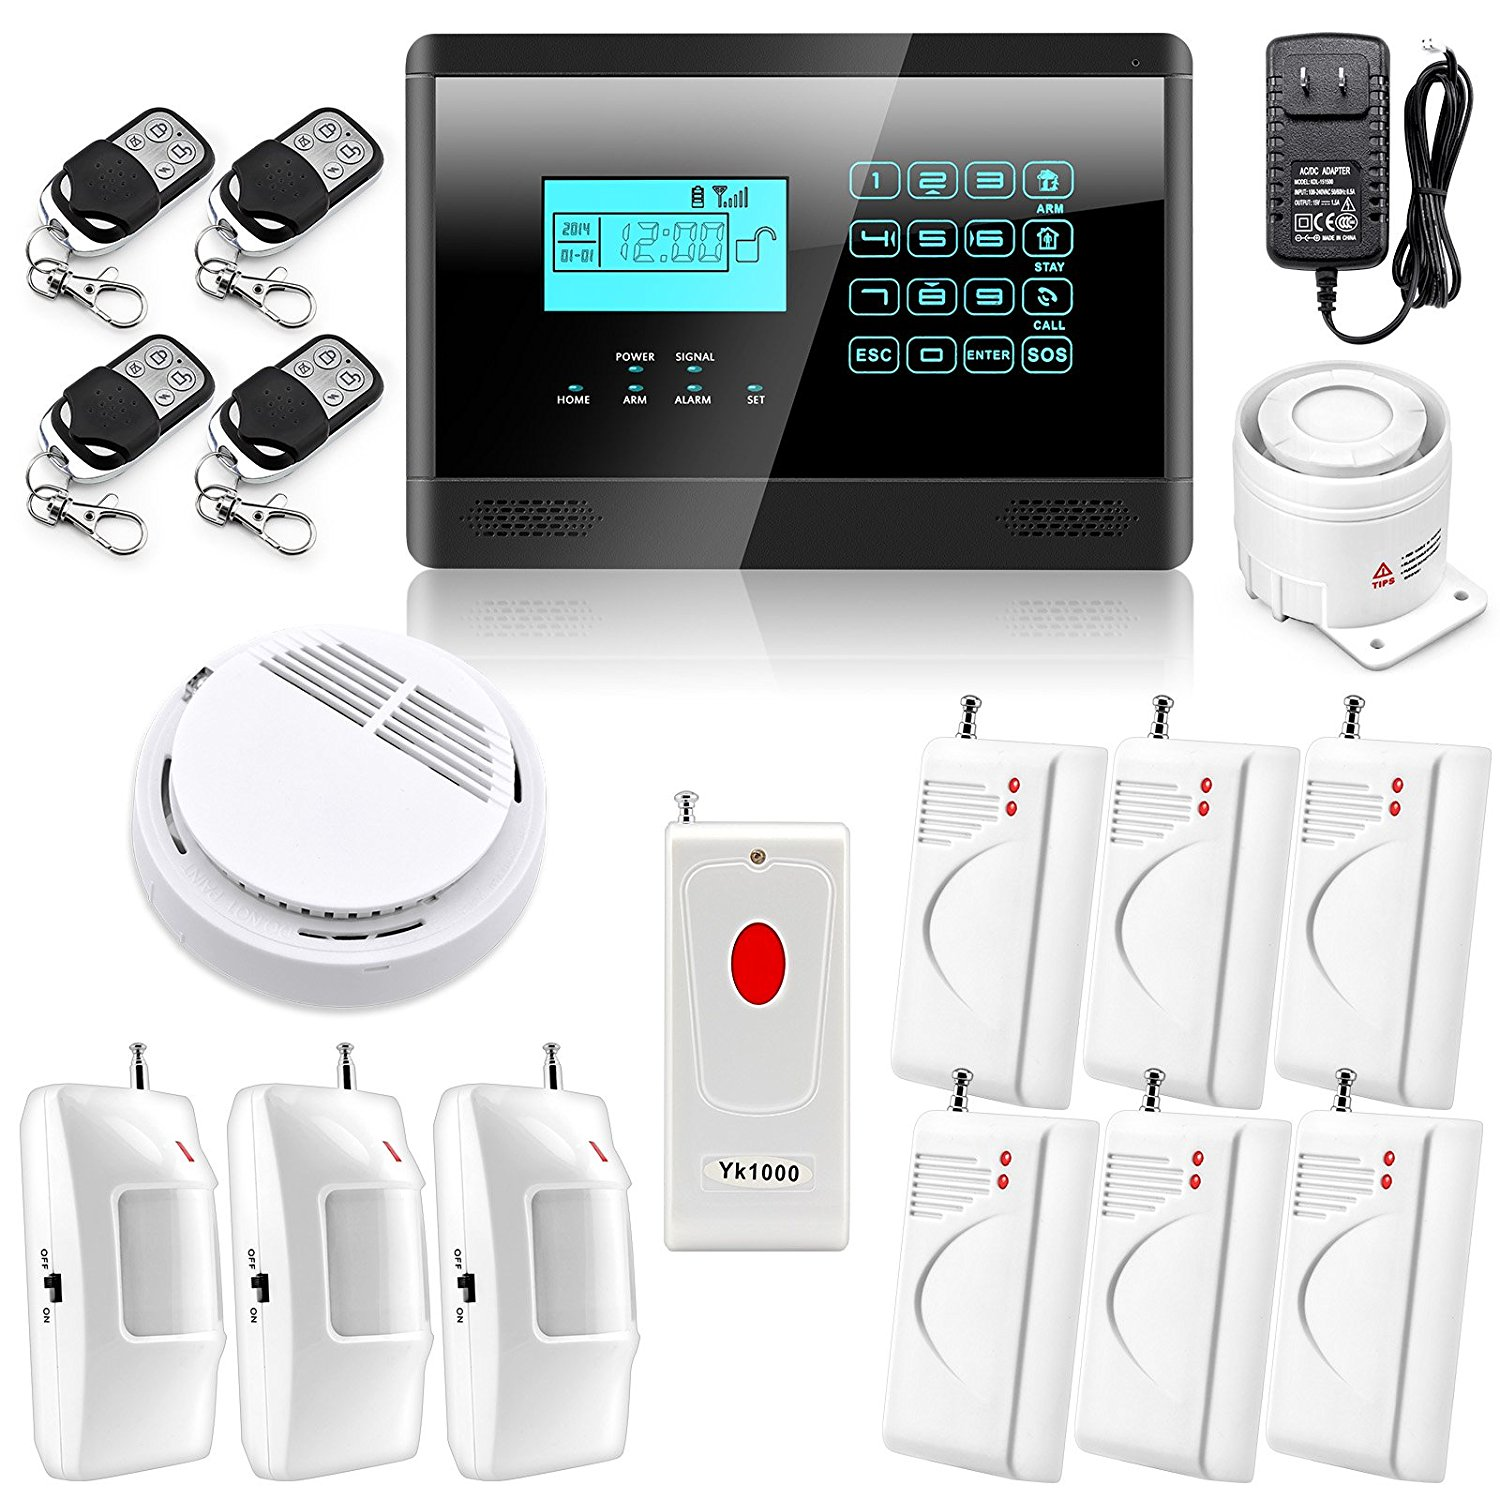 How To Set Up Home Alarm System Mycoffeepot Org